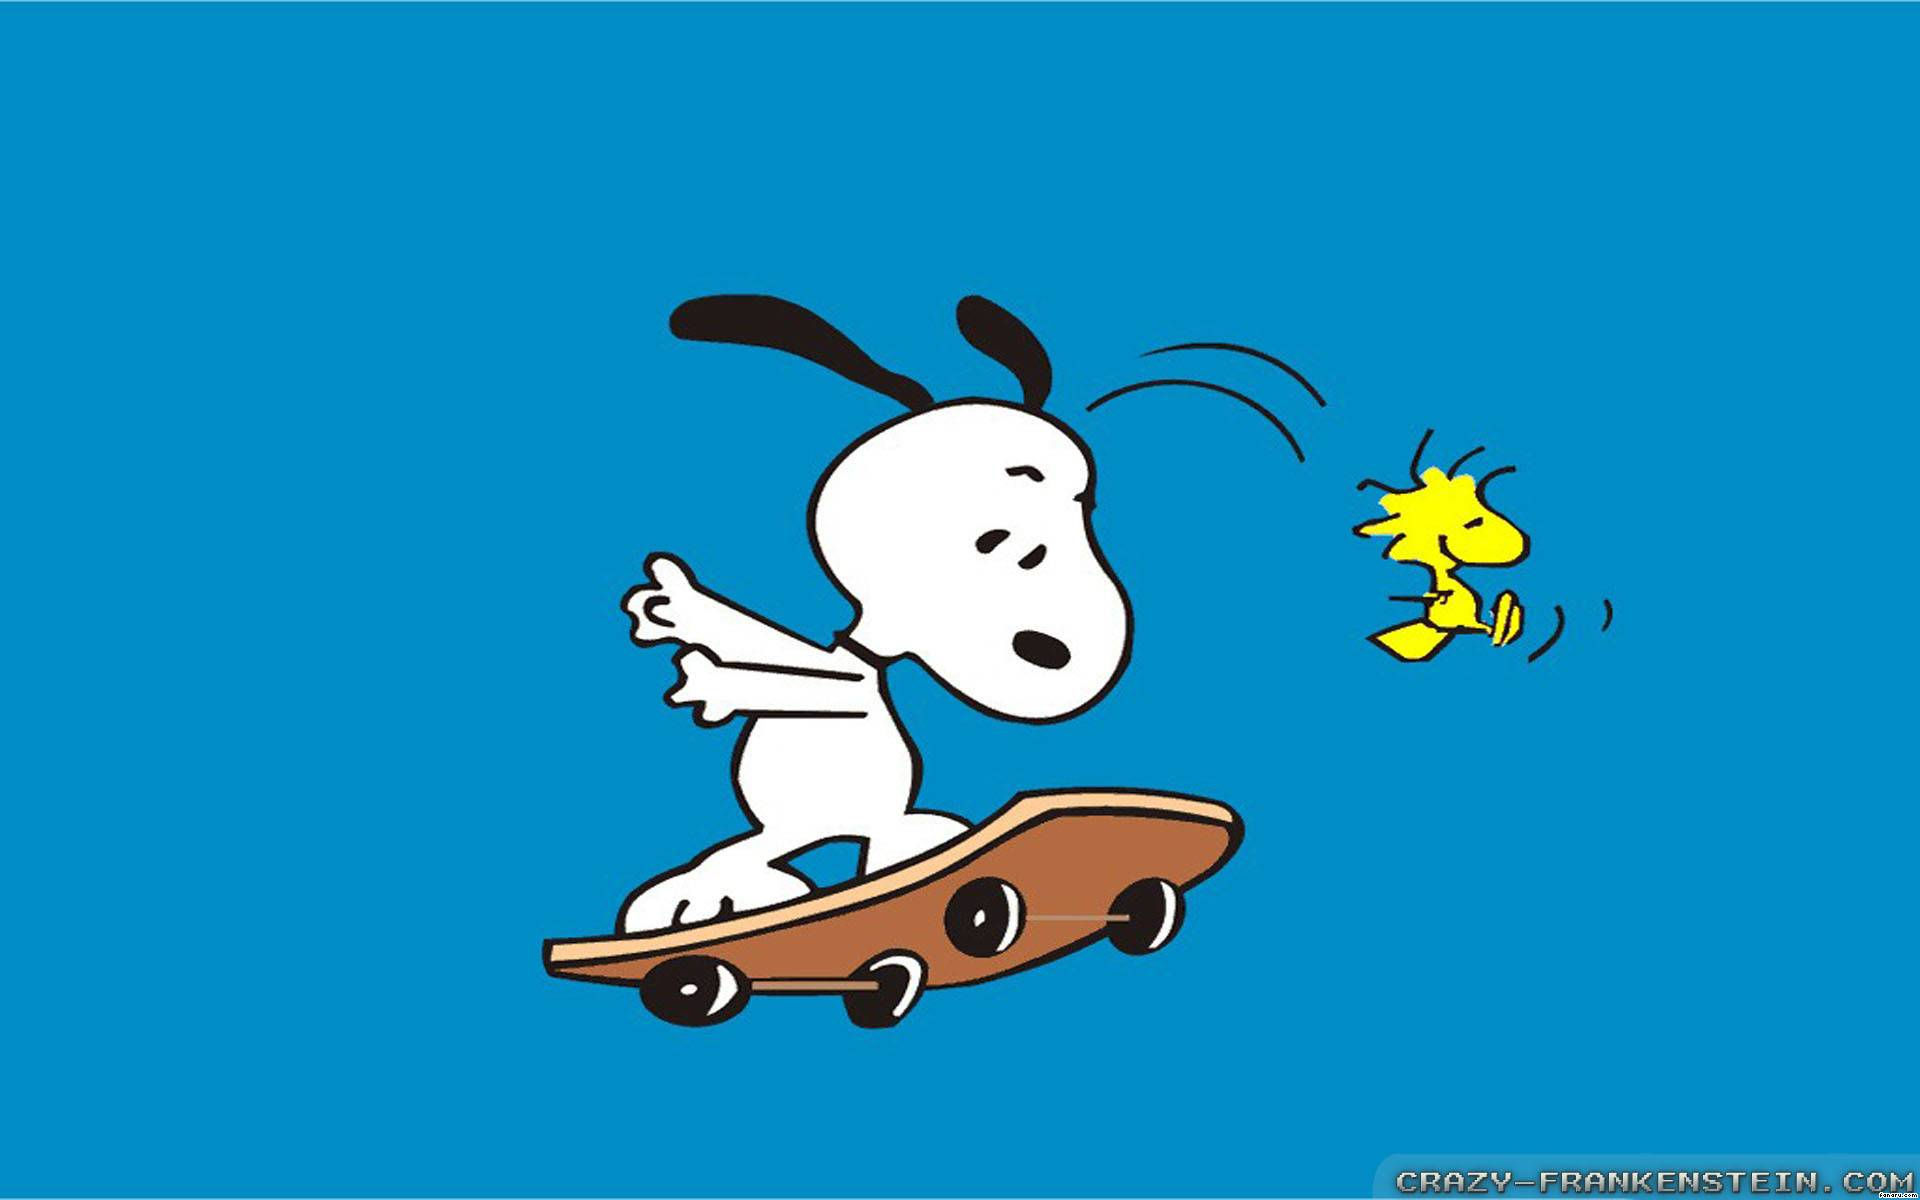 Snoopy hd wallpapers - Snoopy wallpaper for walls ...